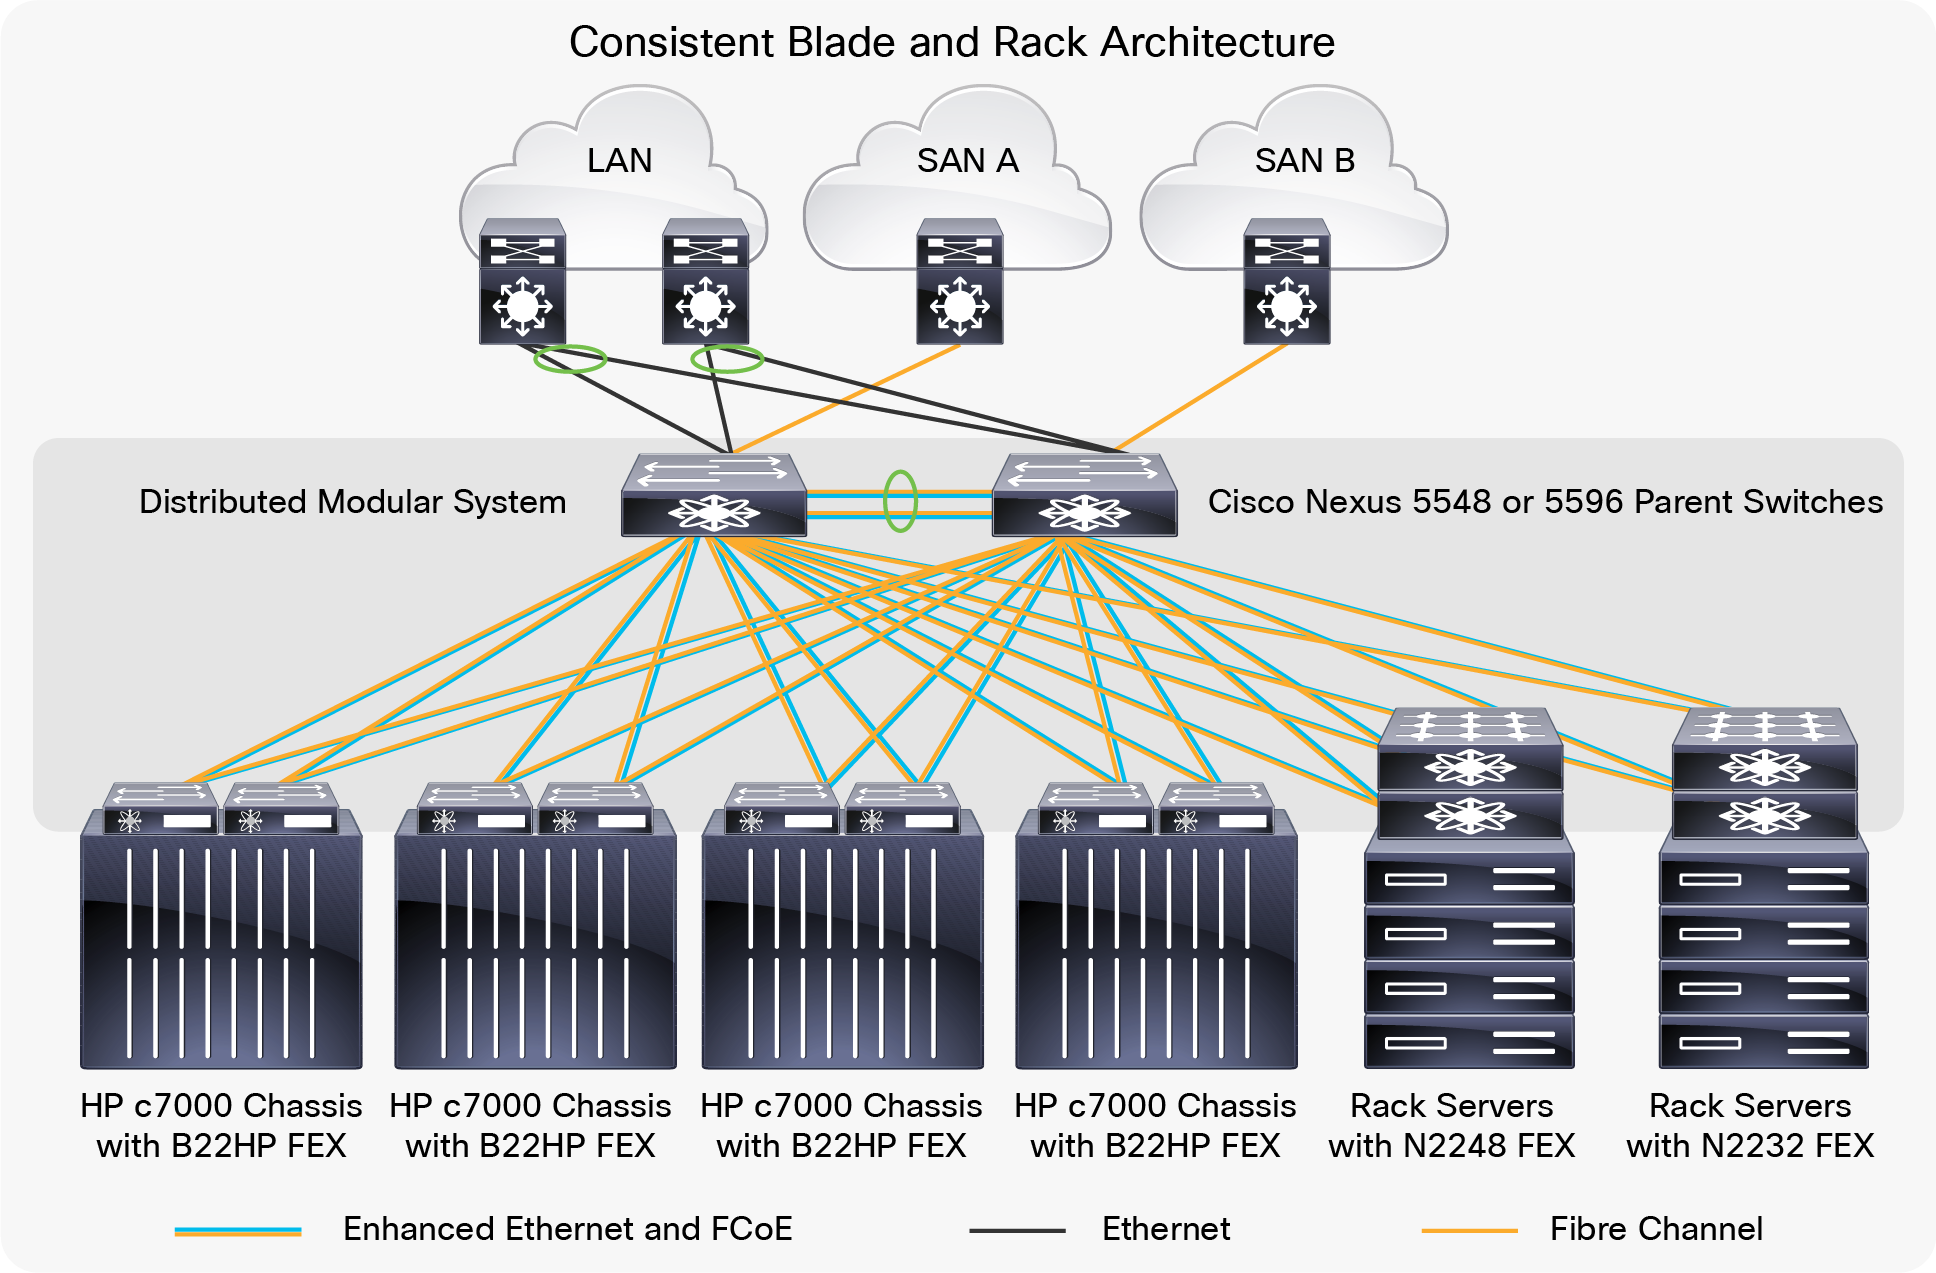 Cisco Nexus Fabric extenders provide highly scalable unified server access connectivity